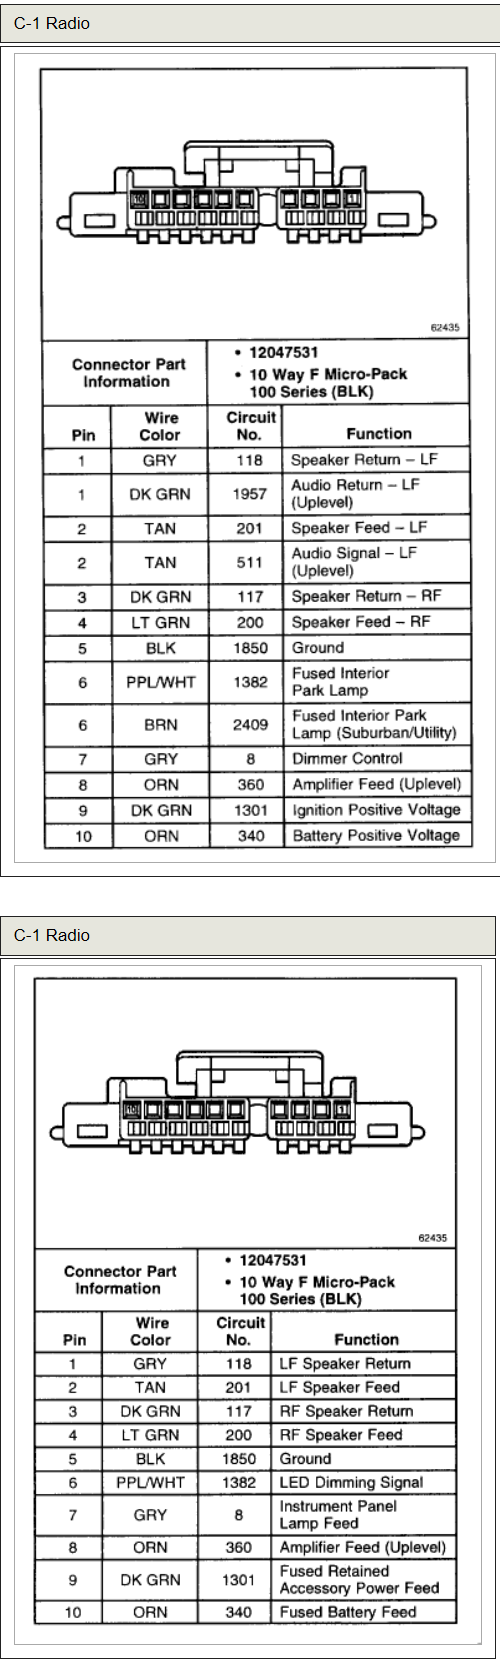 Chevrolet Car Radio Stereo Audio Wiring Diagram Autoradio Connector Chevy 2 Wire Installation Schematic Schema Esquema De Conexiones Anschlusskammern Konektor